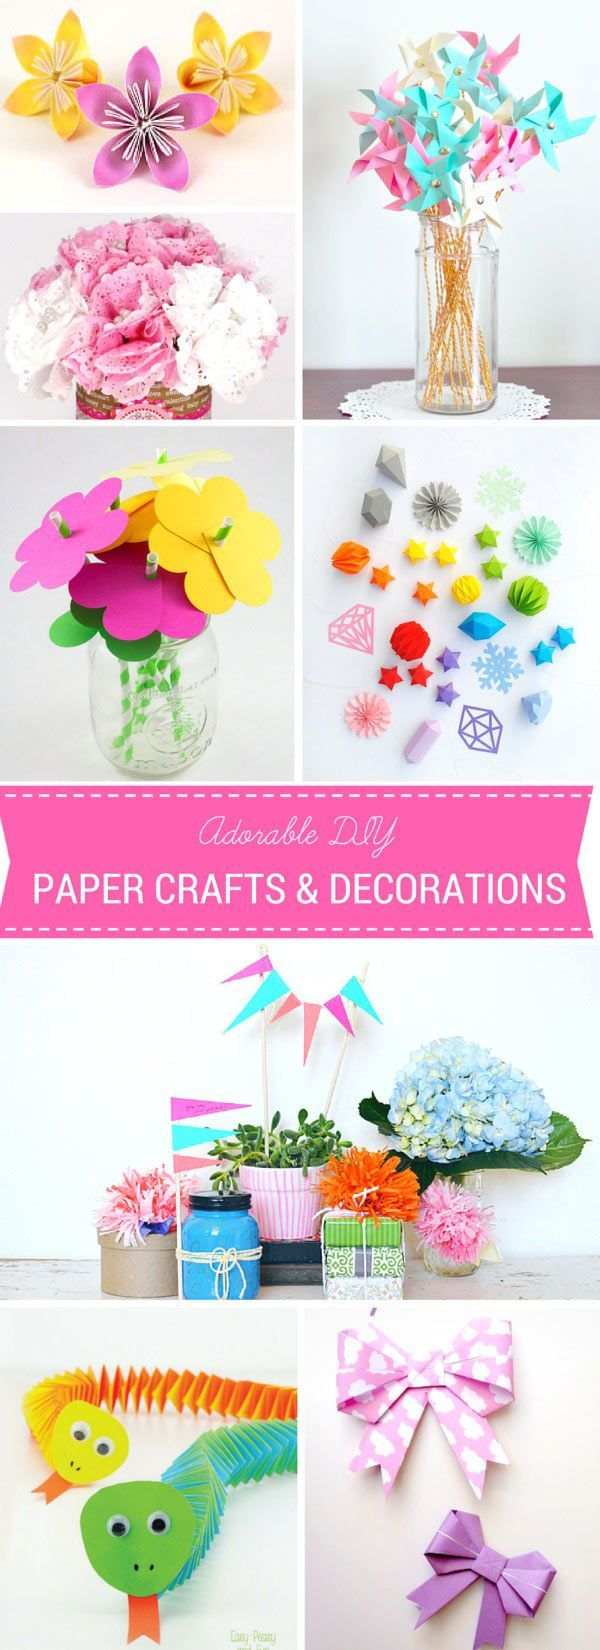 43++ Construction paper crafts for adults ideas